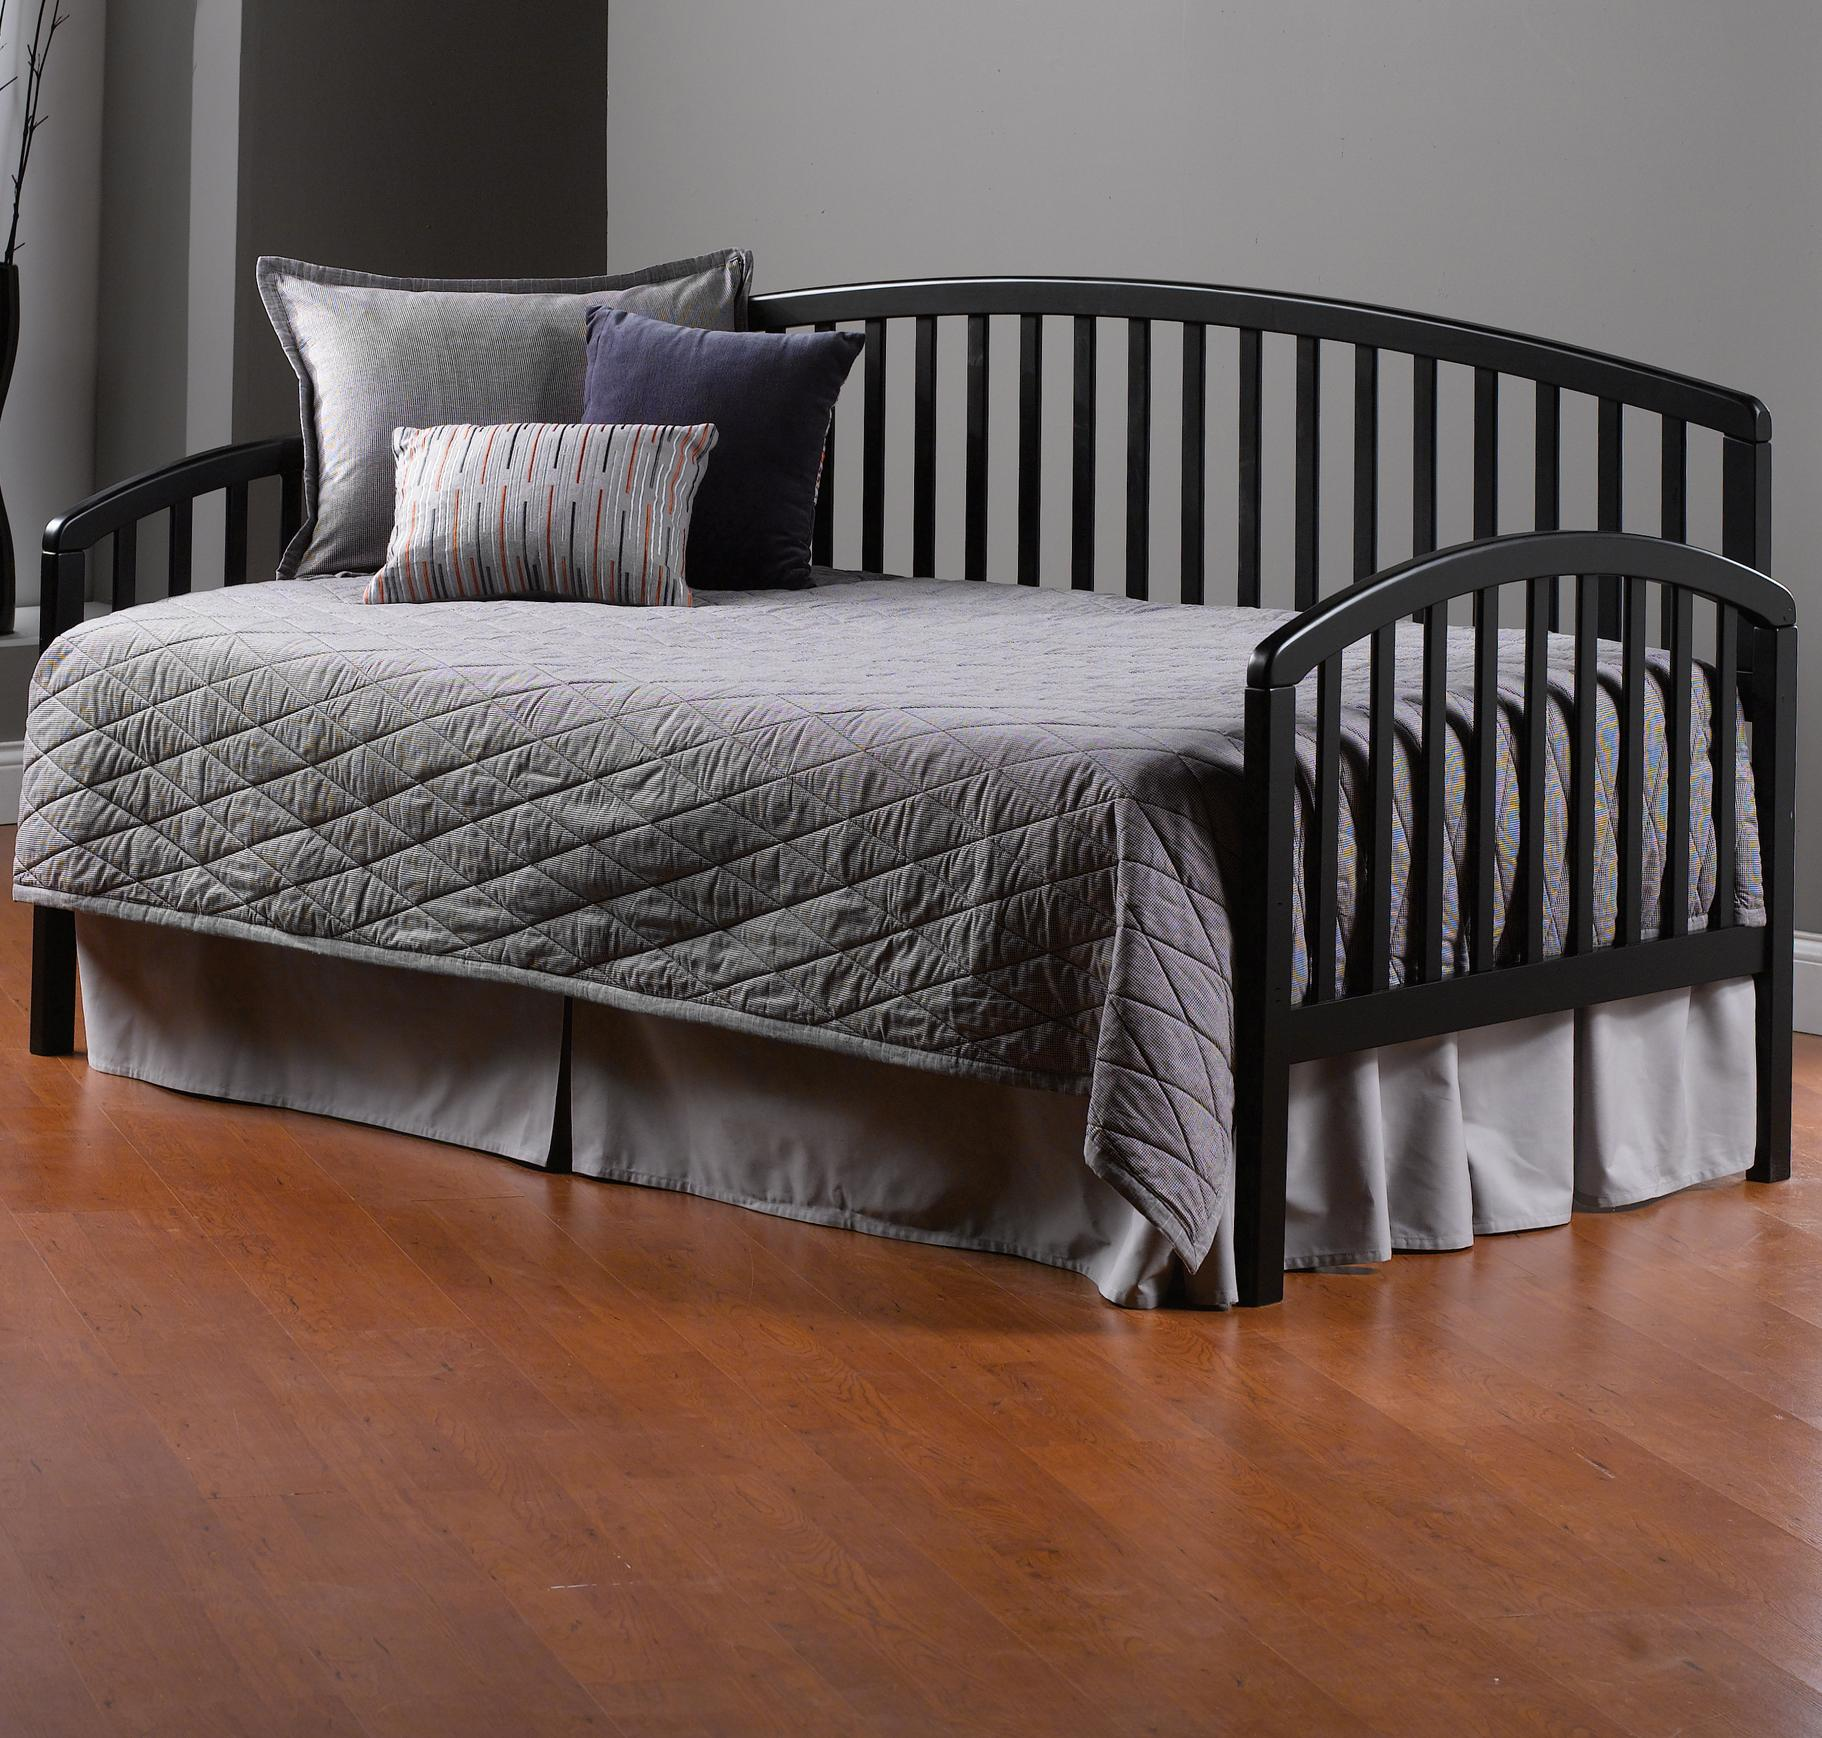 Hillsdale Daybeds Twin Carolina Daybed - Item Number: 1592DBLH